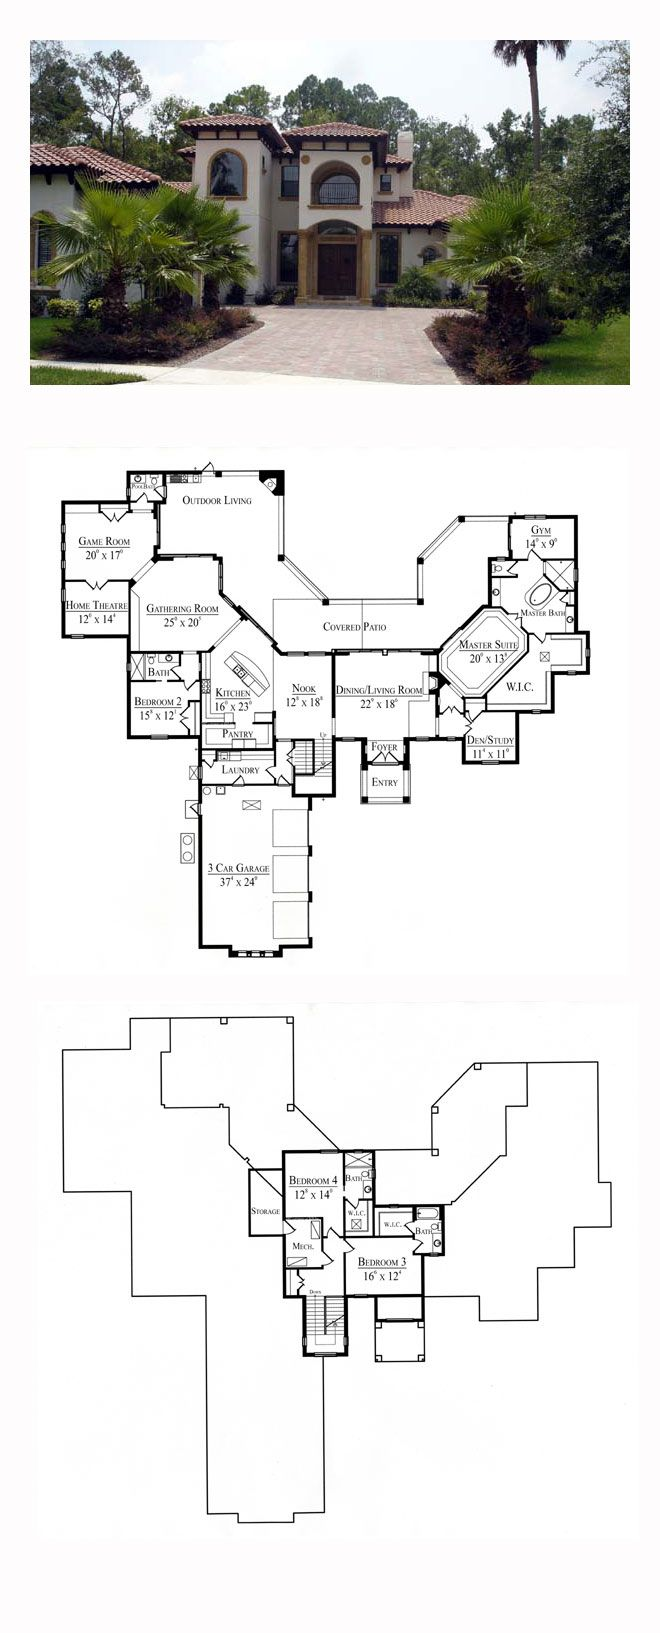 Southwest house plan 74217 total living area 4932 sq for Southwest house floor plans